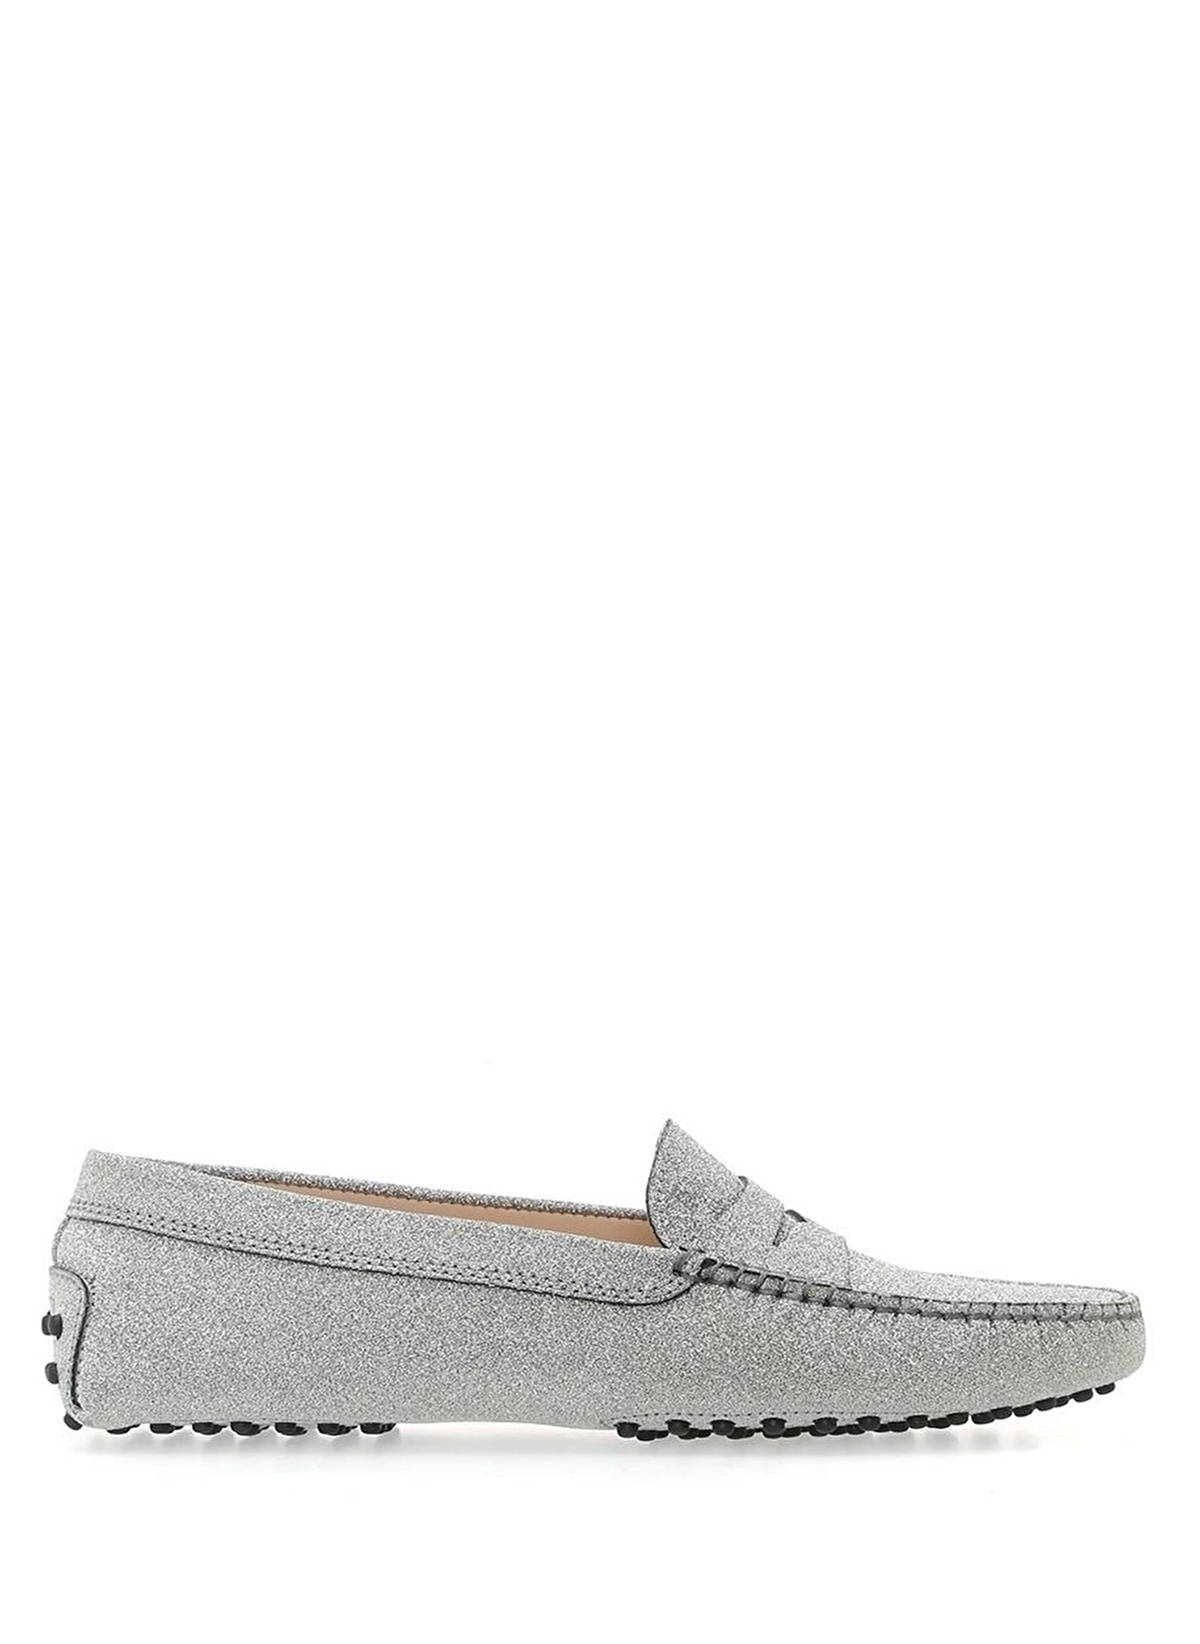 Tods Tod's Loafer 3195.0 Tl